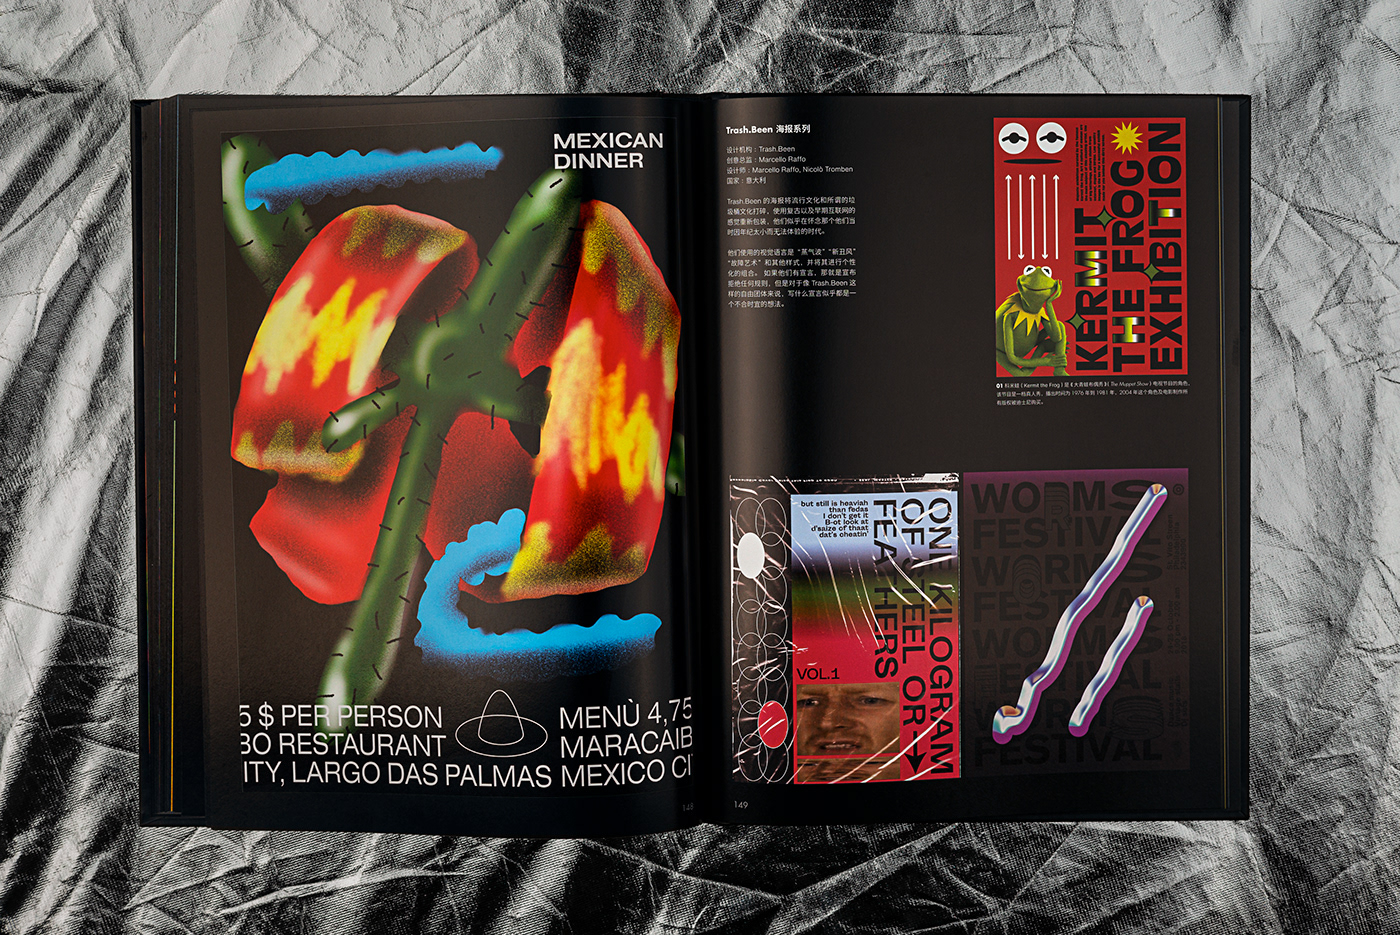 Thumbnail for 'New Waves of European Graphic Design' Showcases European Design From Concept To Print